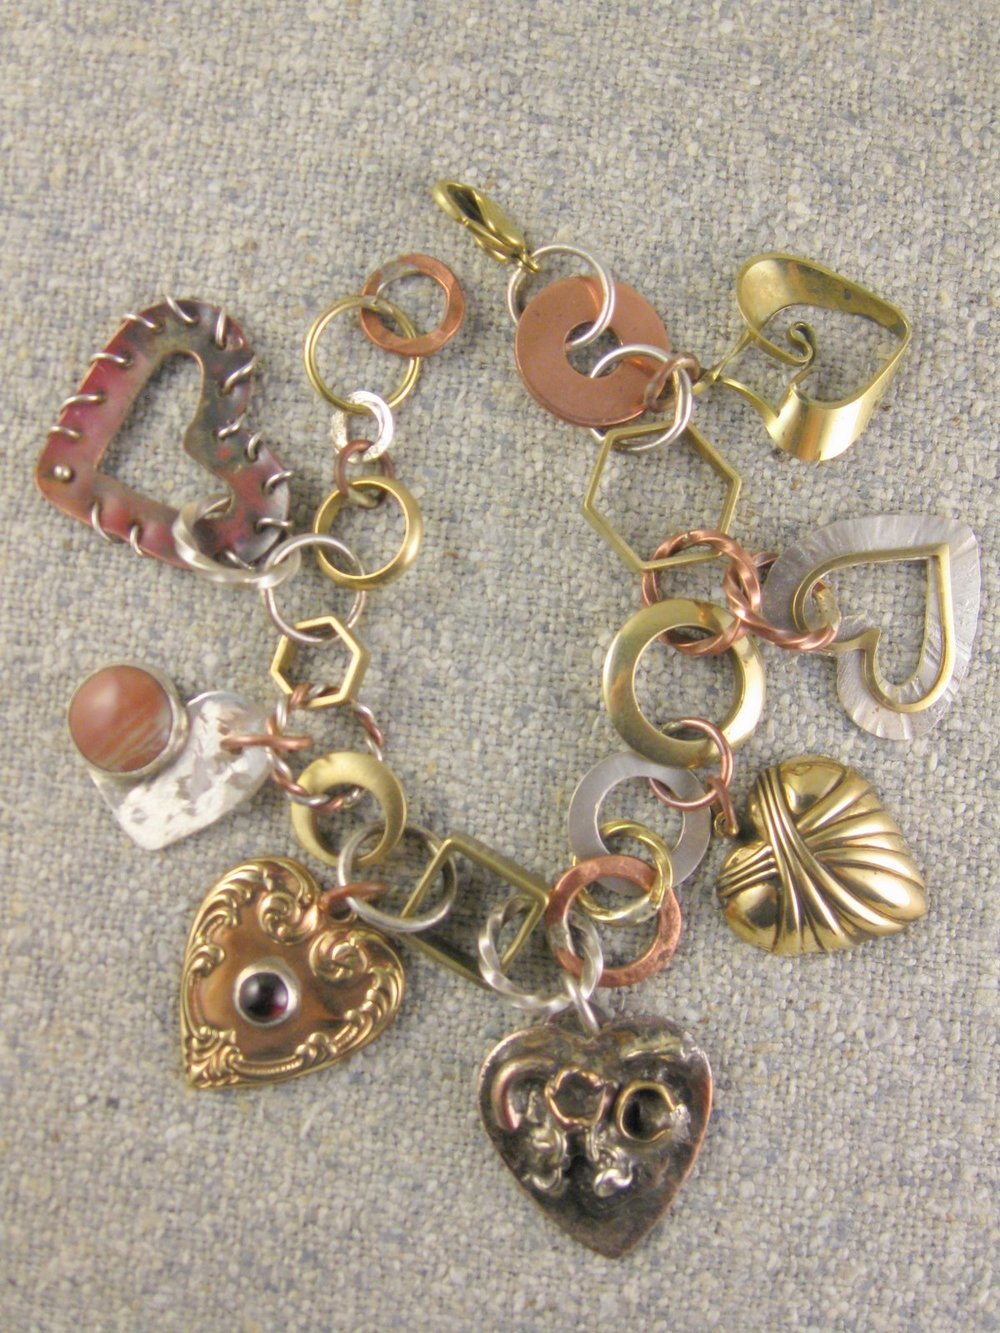 heartcharm bracelet